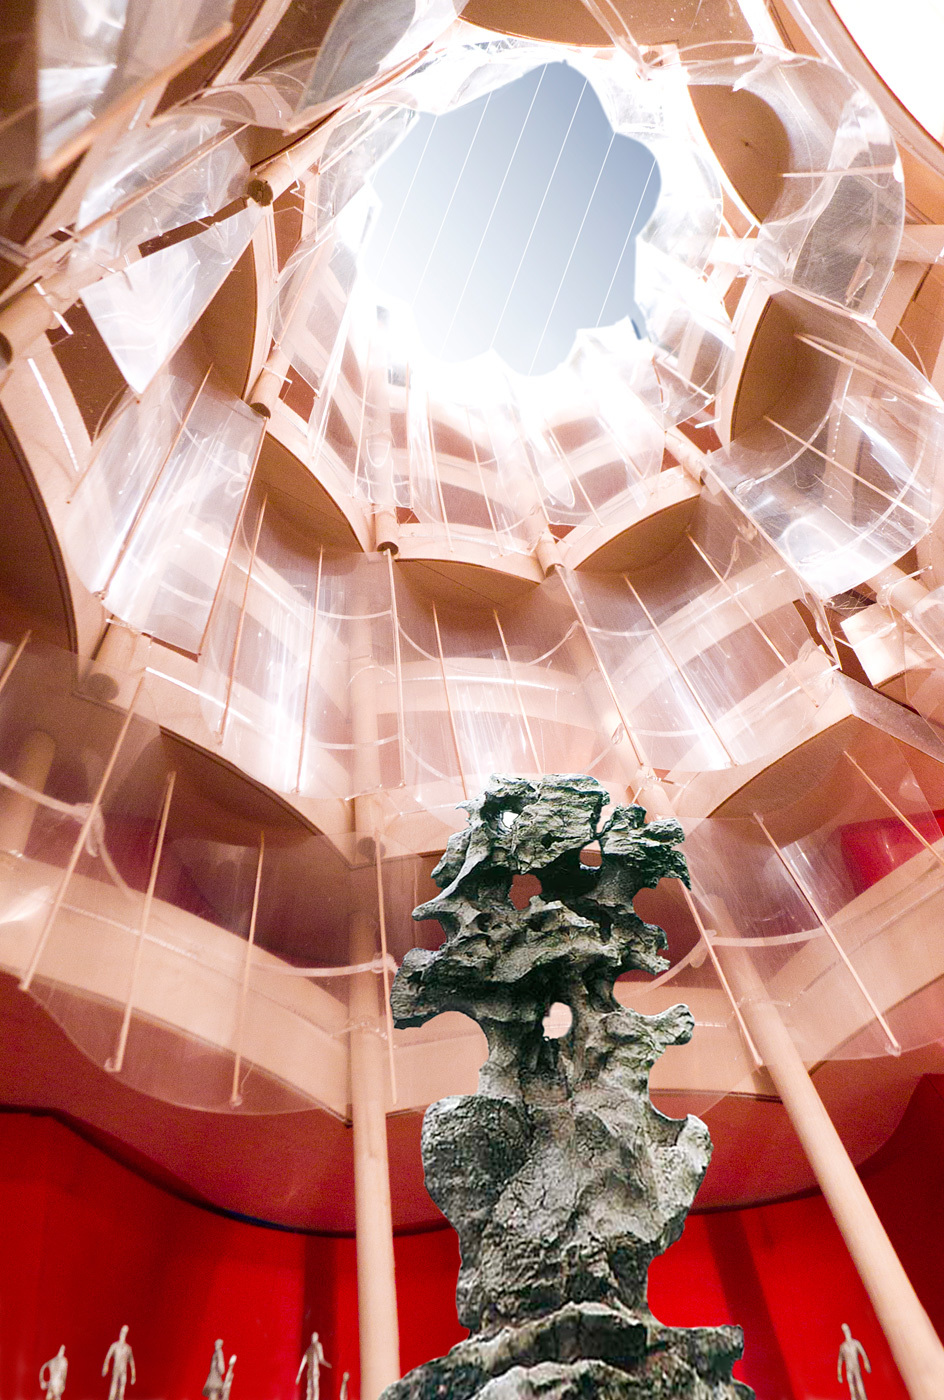 The great hall (Image courtesy of Gehry Partners)